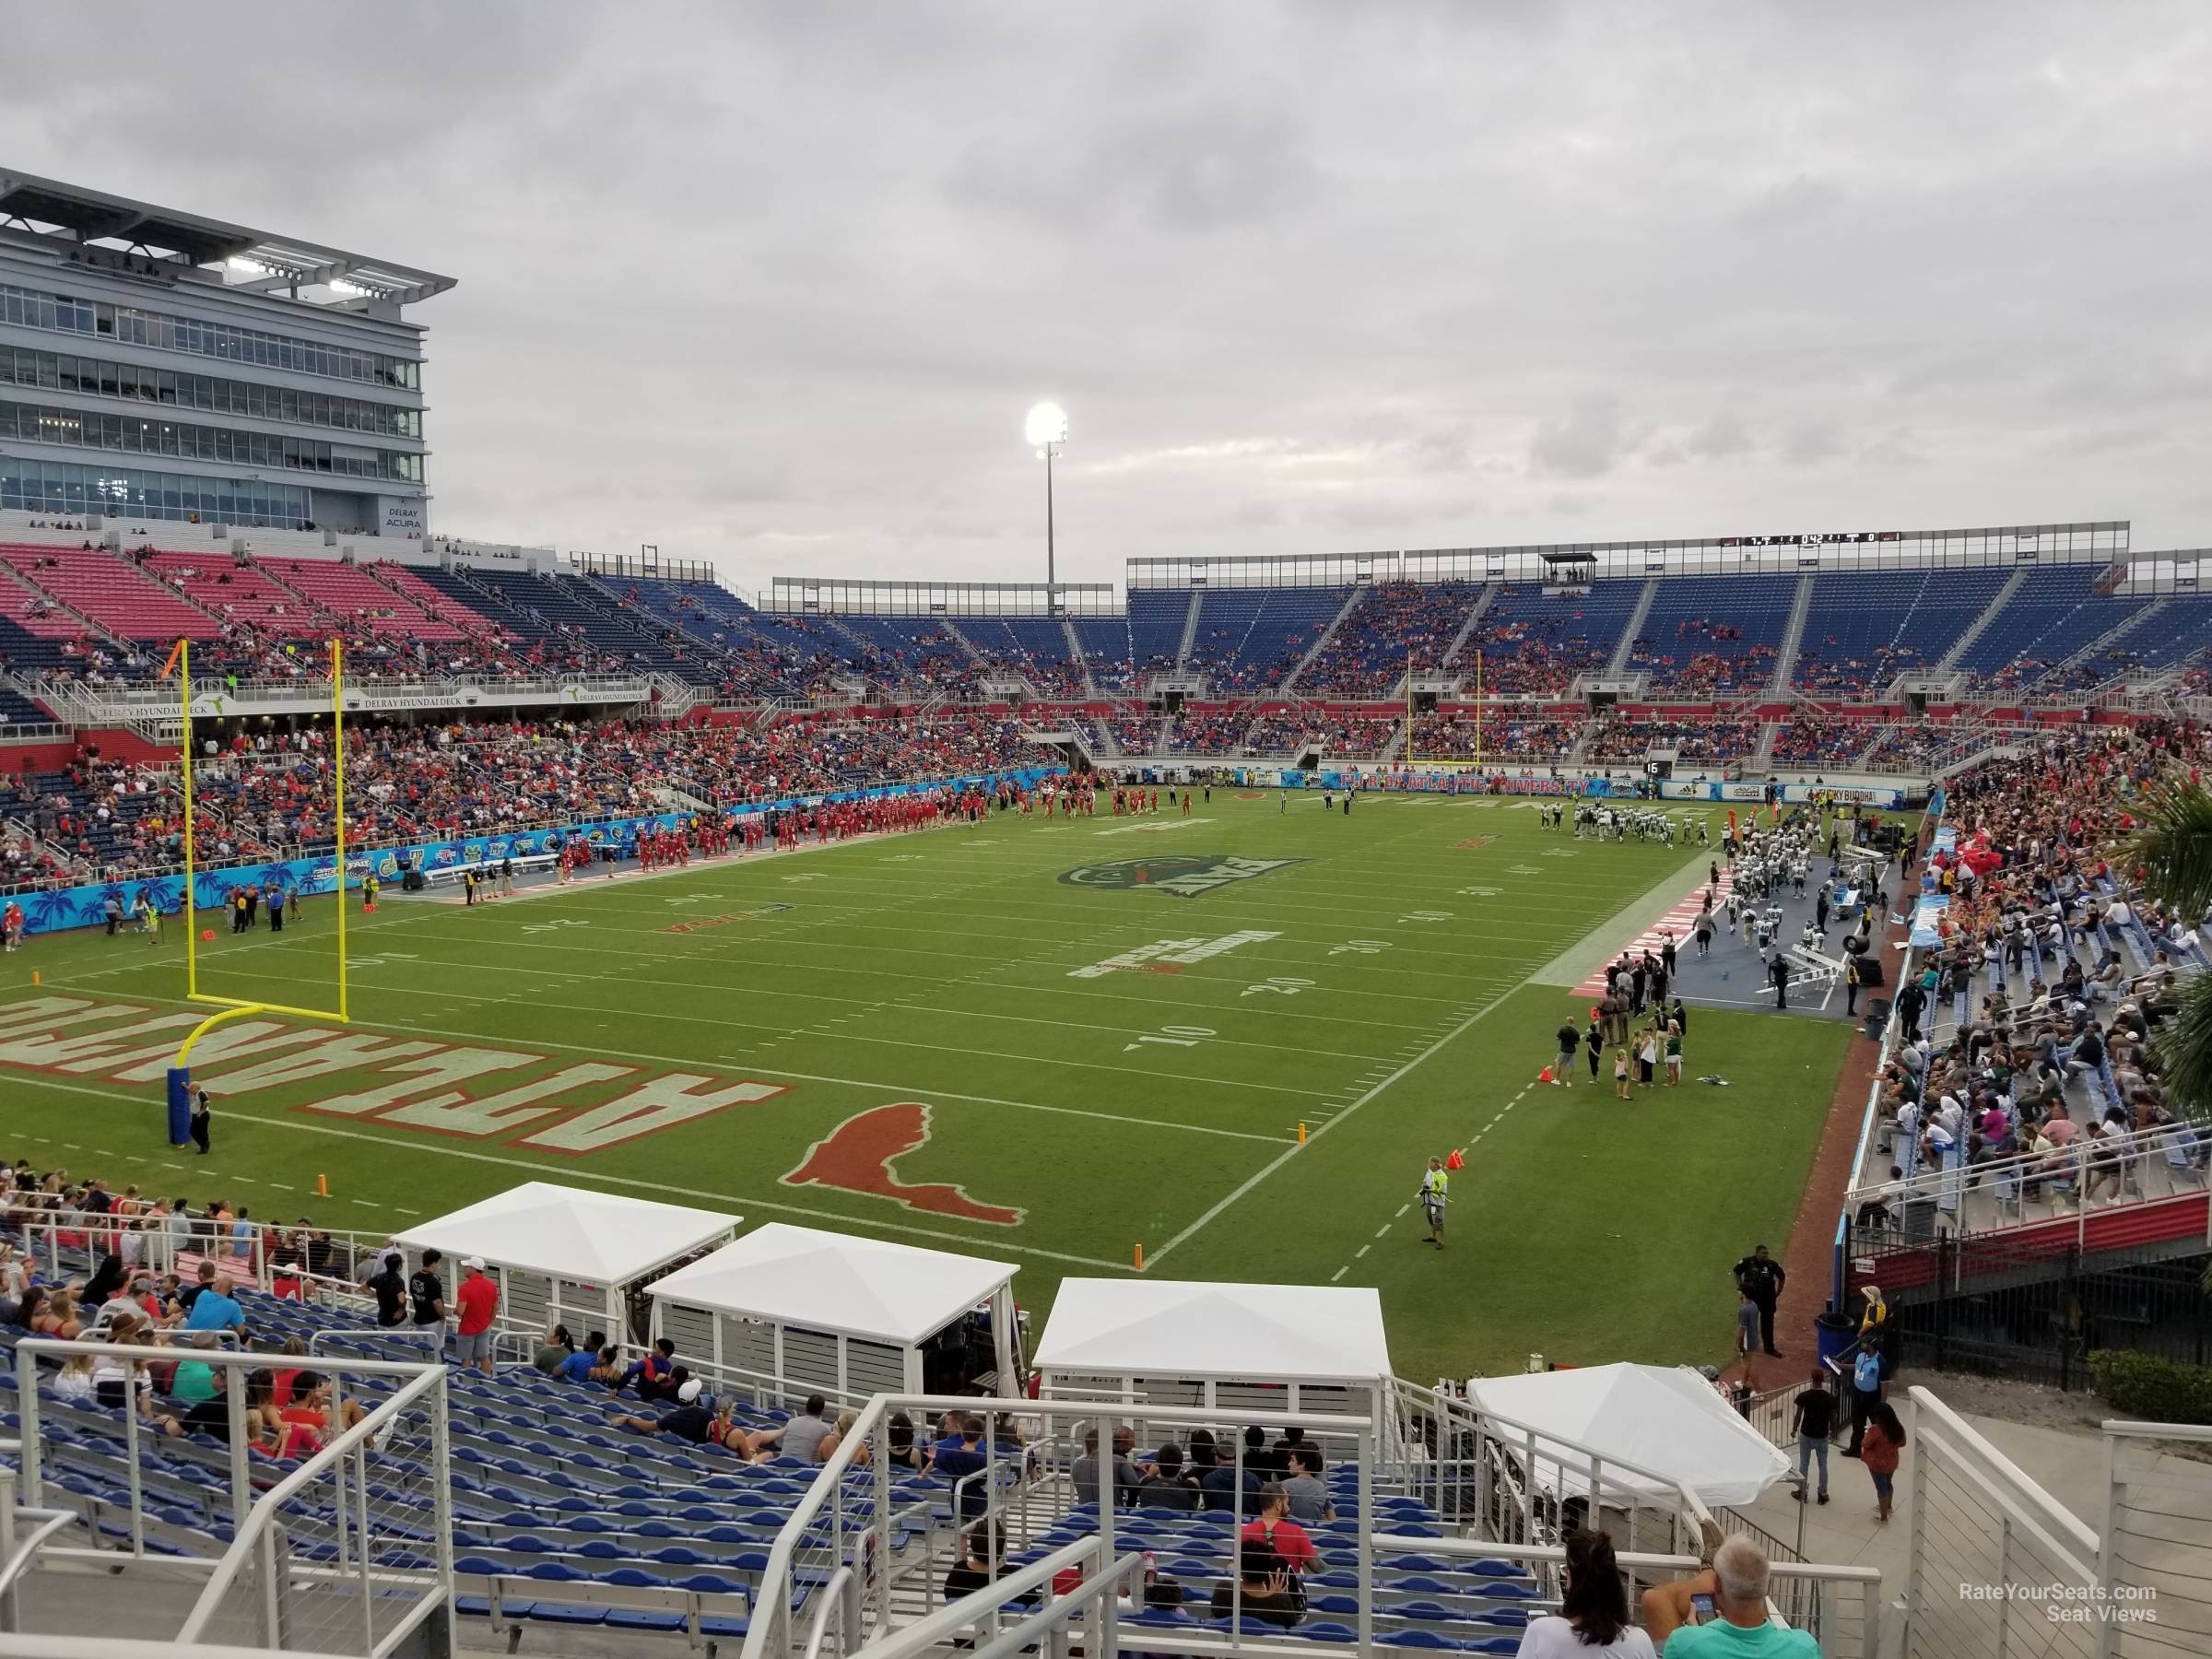 Section 231 seat view